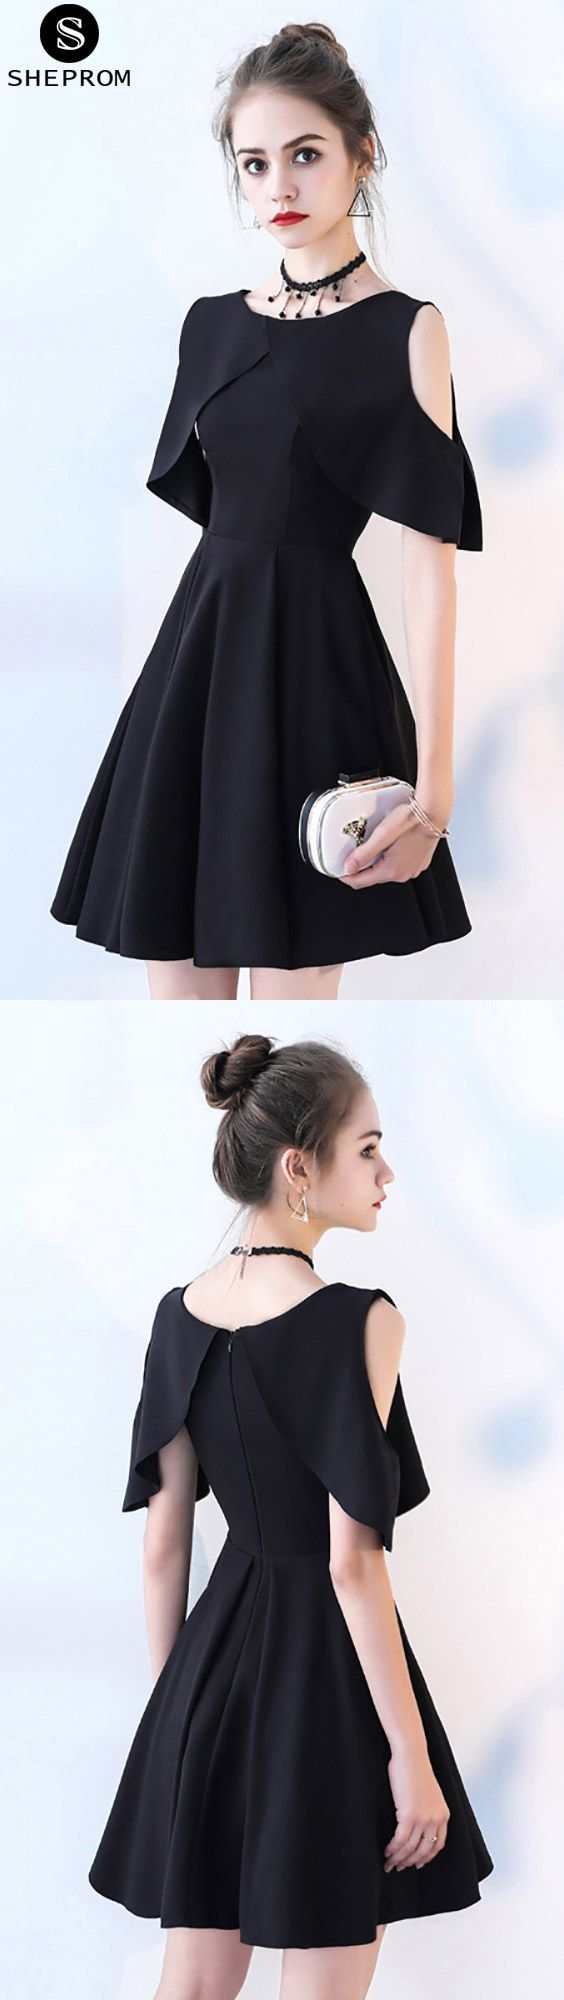 Black cold shoulder short homecoming dress with sleeves